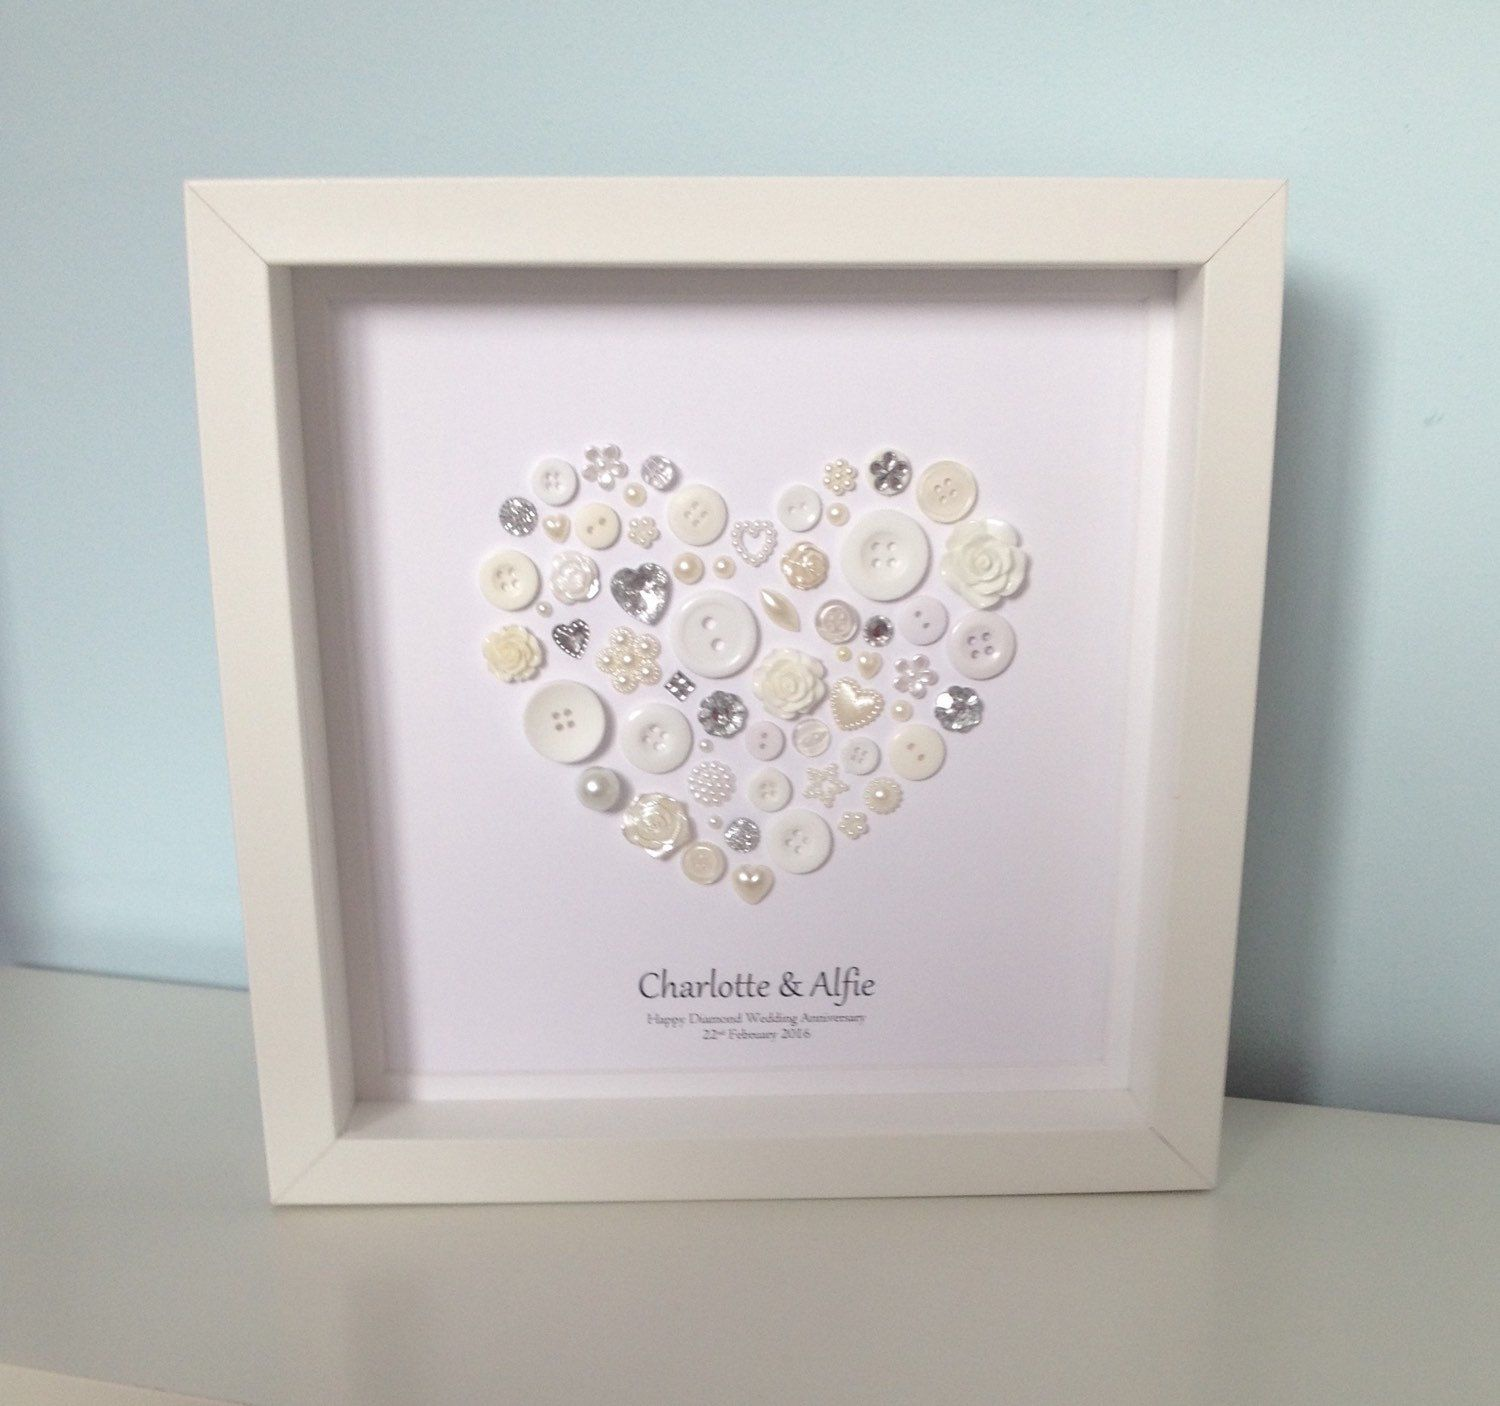 Beautiful diamond anniversary button art personalised 60th or 75th beautiful diamond anniversary button art personalised 60th or 75th wedding anniversary engagement gift kristyandbryce Choice Image